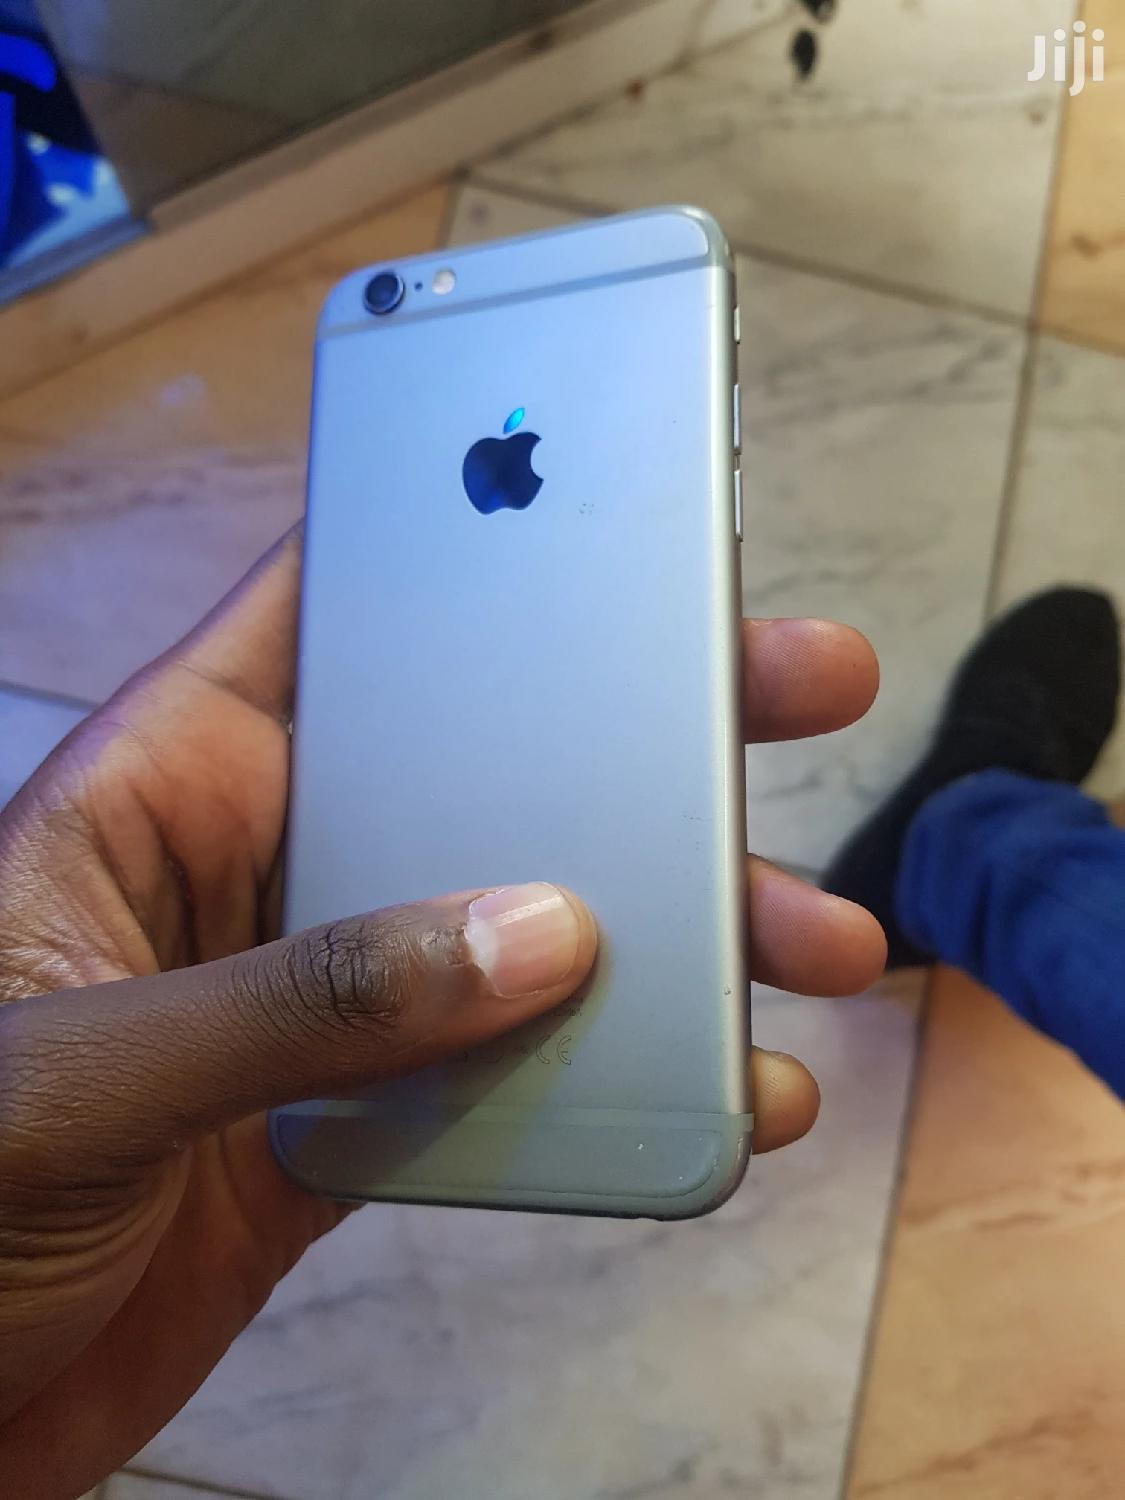 New Apple iPhone 6 32 GB | Mobile Phones for sale in Nairobi Central, Nairobi, Kenya